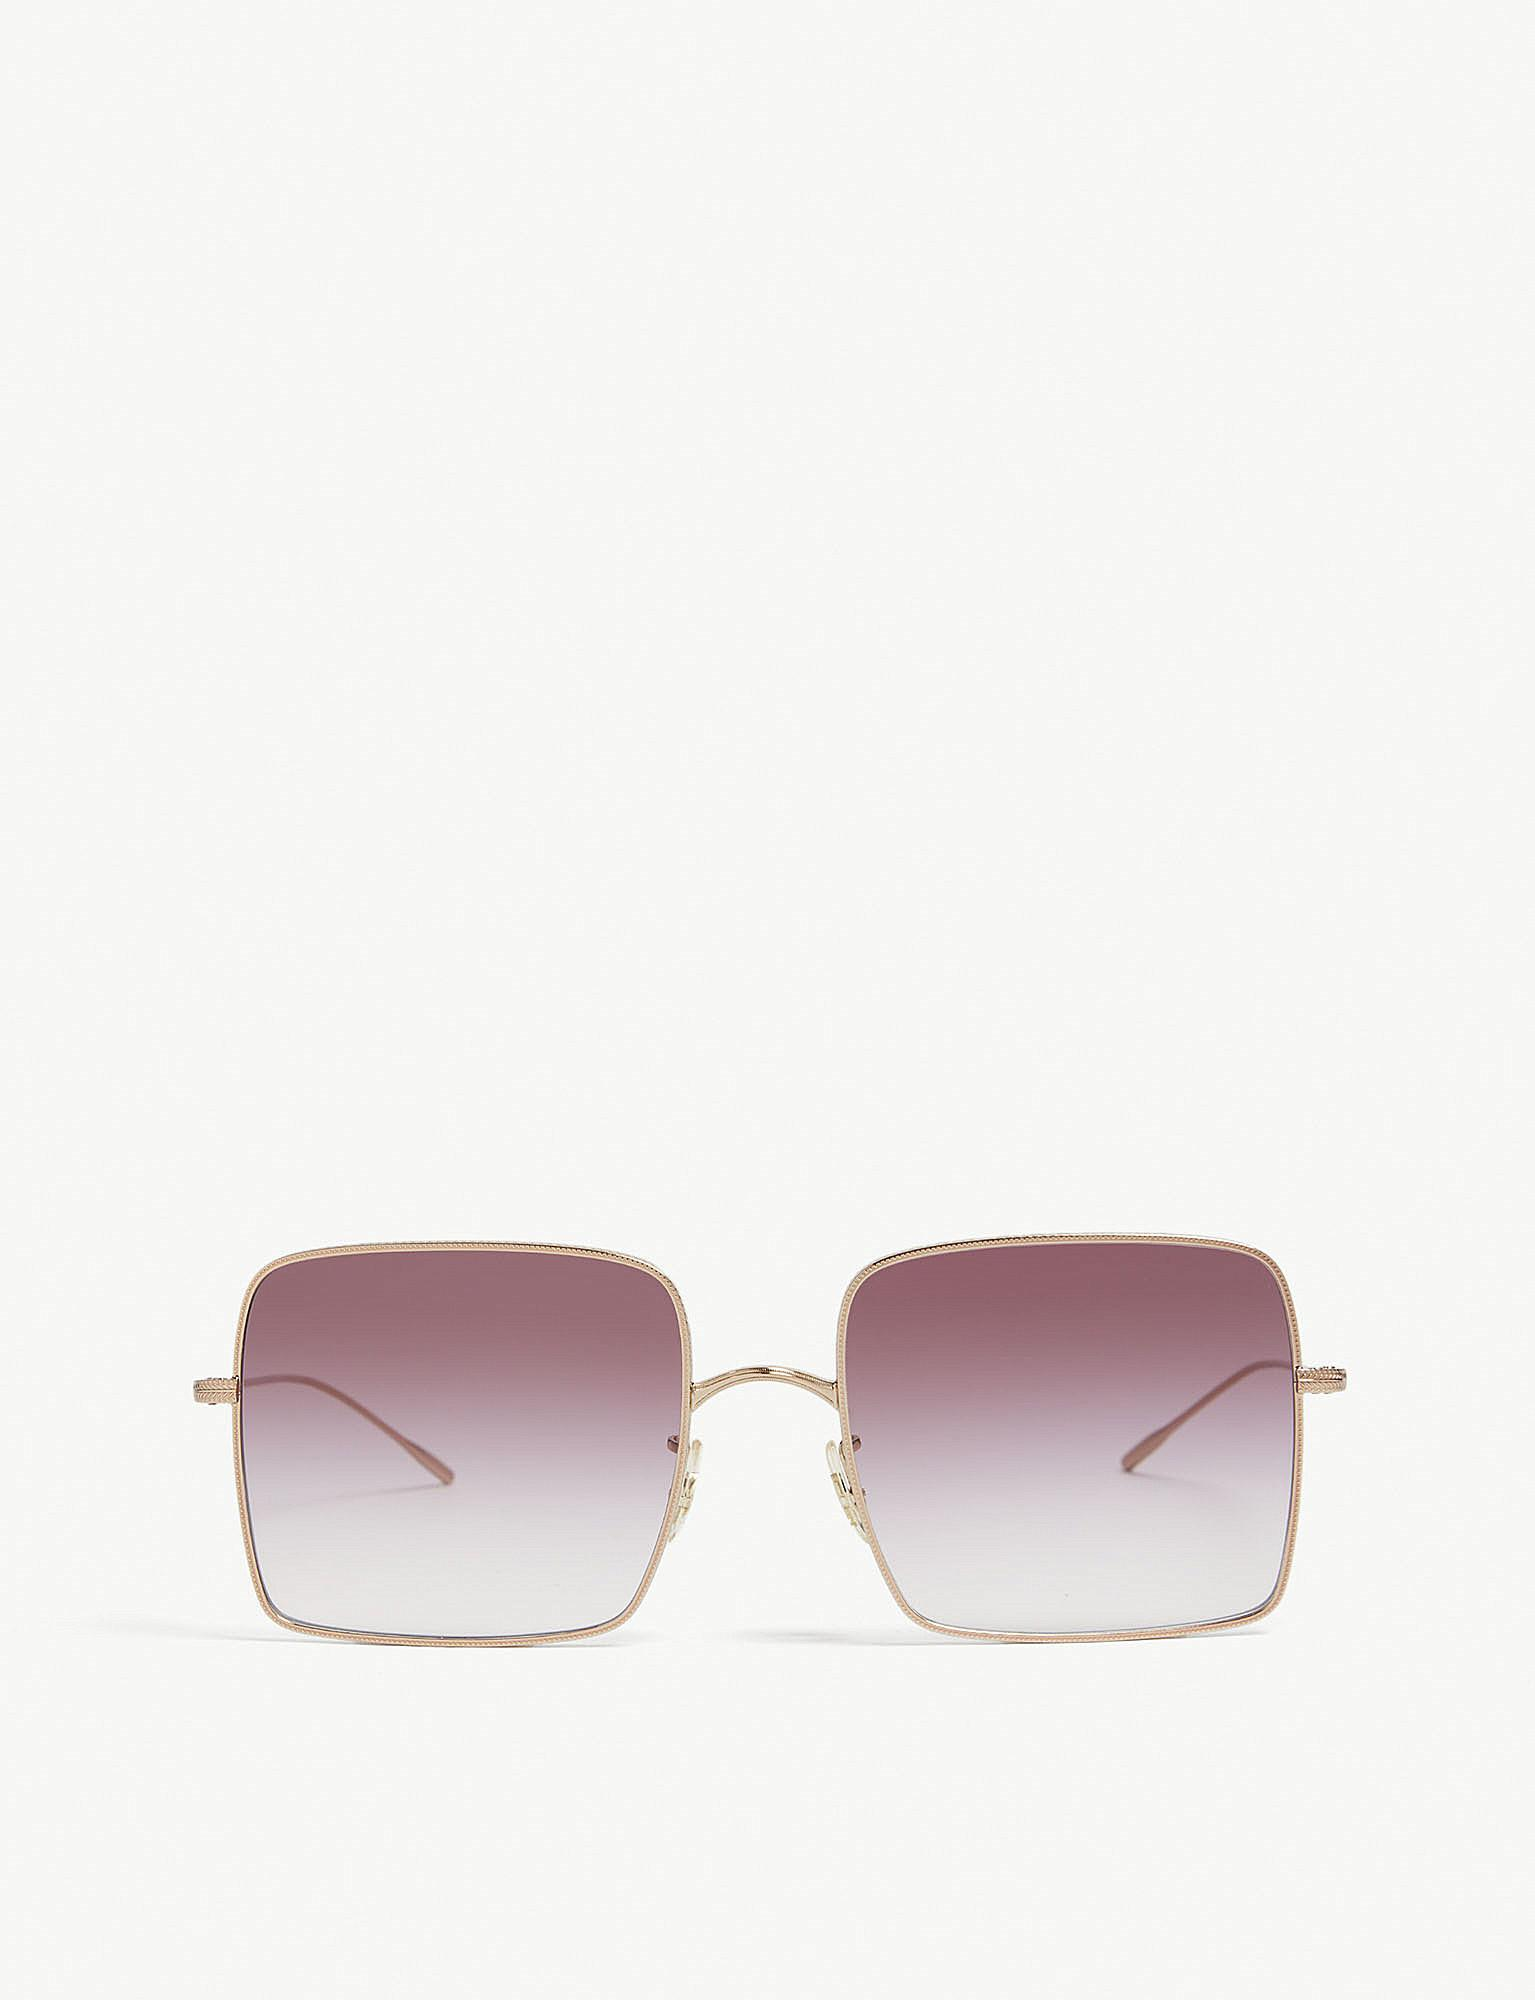 7d56350d20b Lyst - Oliver Peoples Ov1236 Rassine Square-frame Sunglasses in Pink